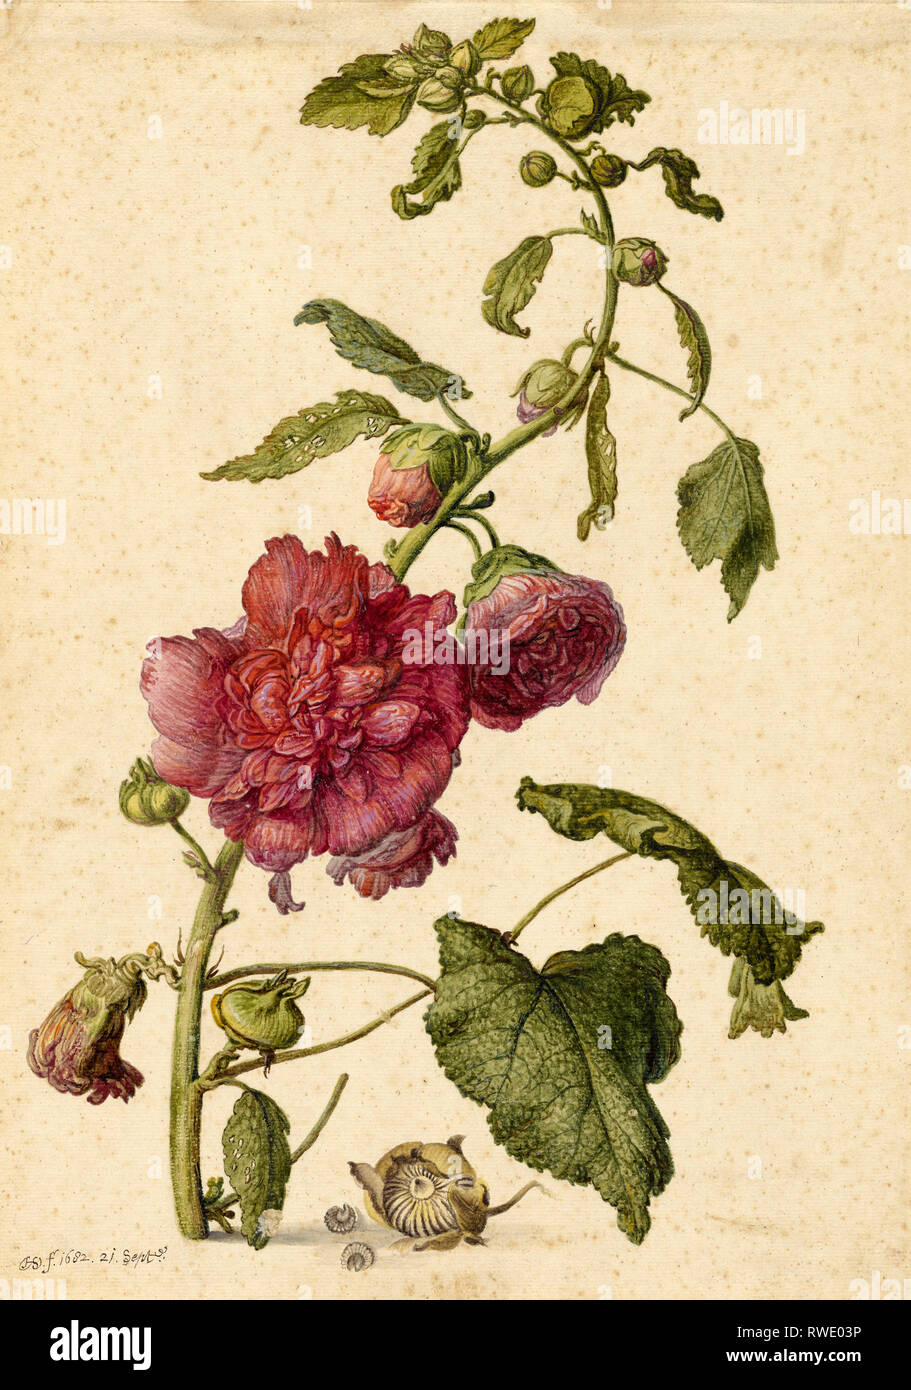 A Hollyhock; Herman Saftleven the Younger (Dutch, 1609 - 1685); Holland, Europe; September 21, 1682; Watercolor, gouache and black chalk framing lines - Stock Image